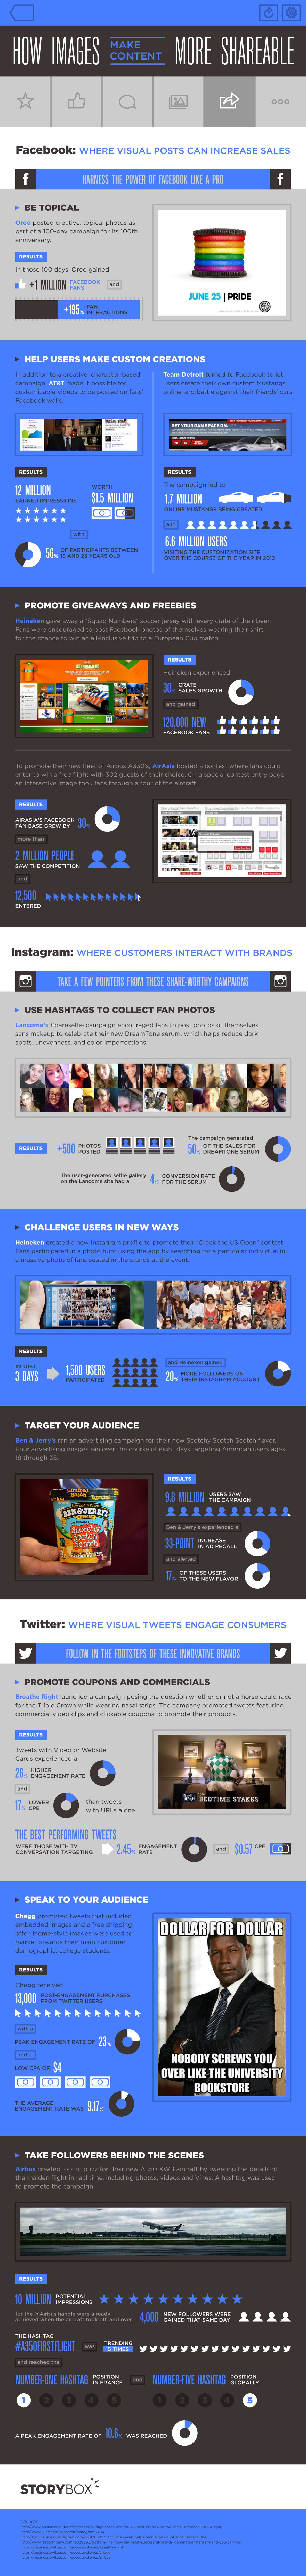 How Images Make Content More Shareable - #infographic #socialmedia #contentmarketing